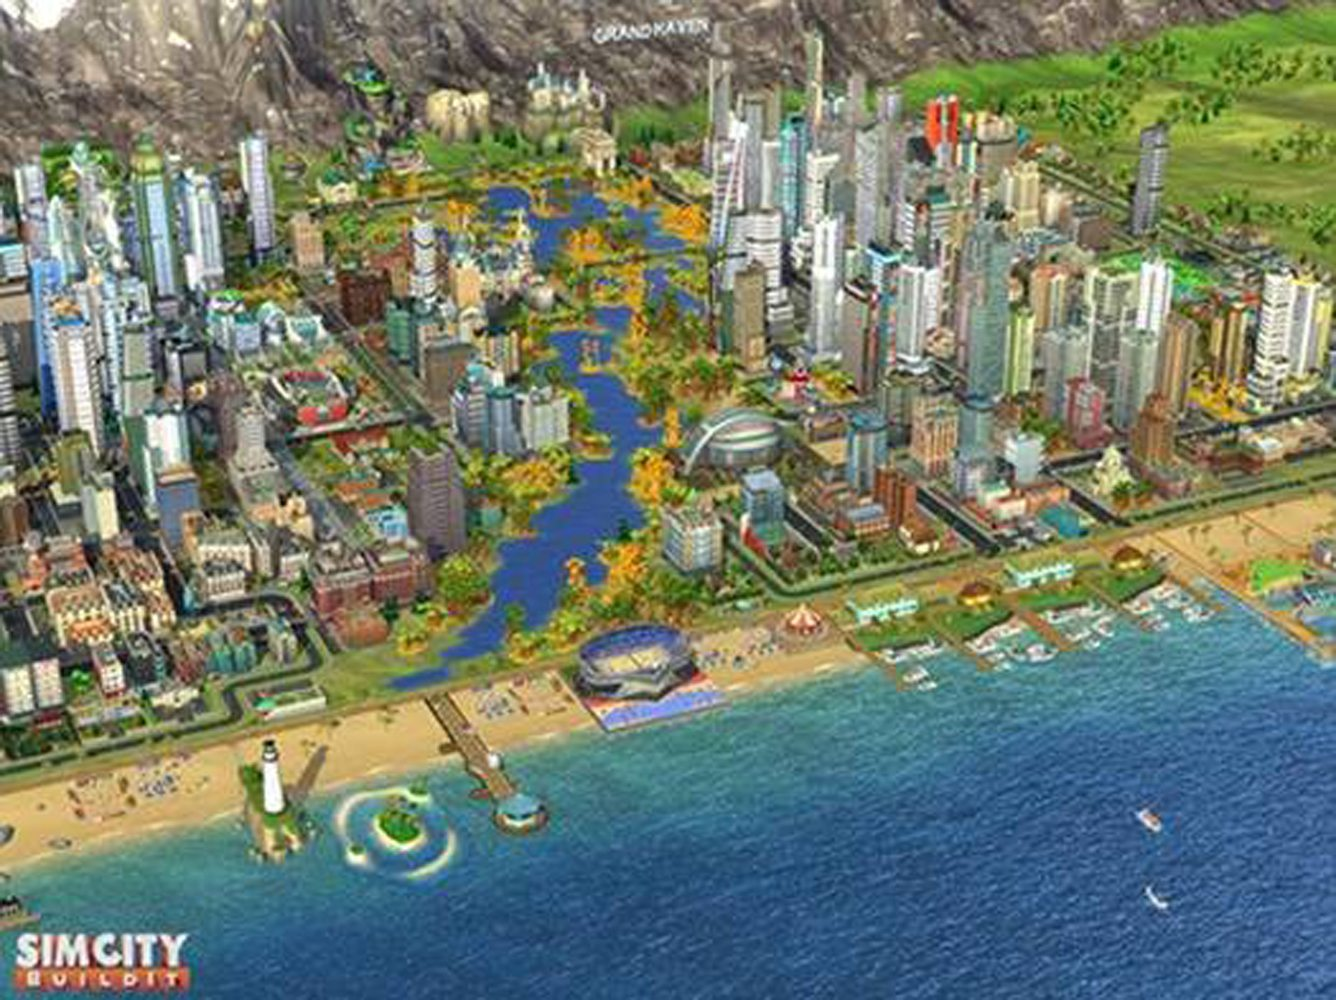 SimCity BuildIt Adds Lakes, Rivers, and Forests